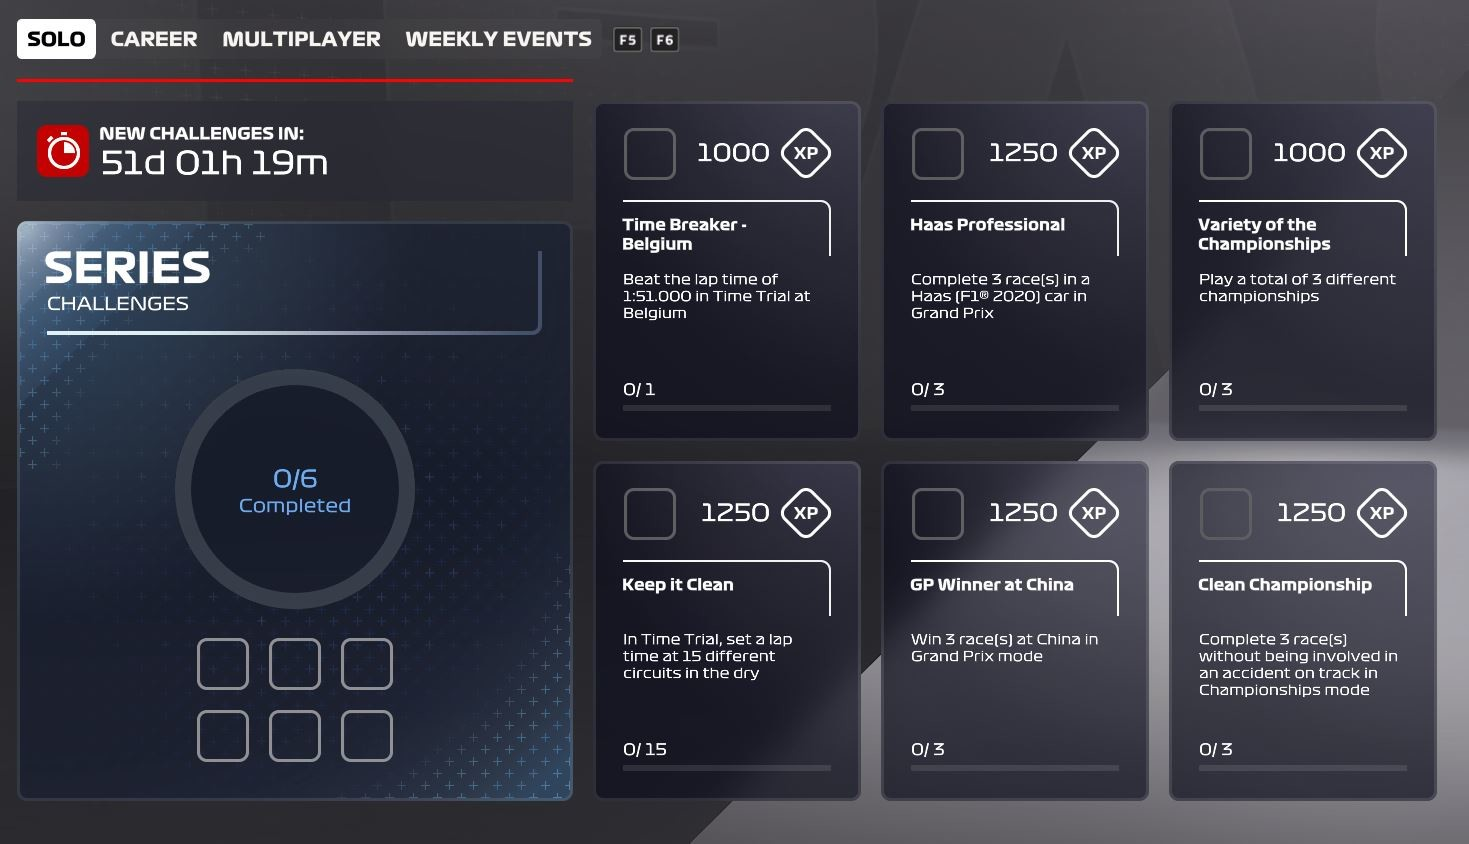 Picture of the Solo challenges